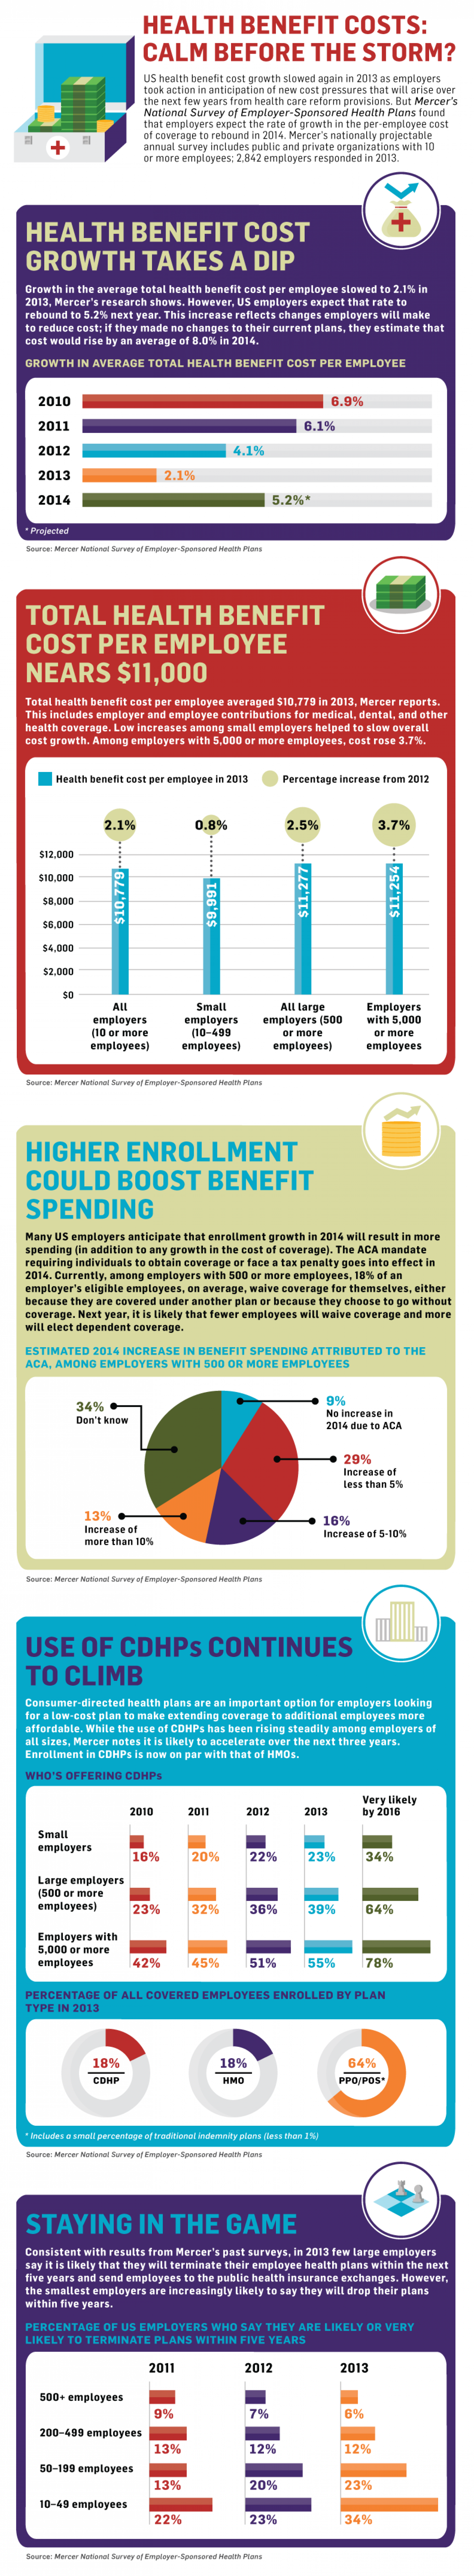 Health Benefit Costs: Calm Before the Storm? Infographic